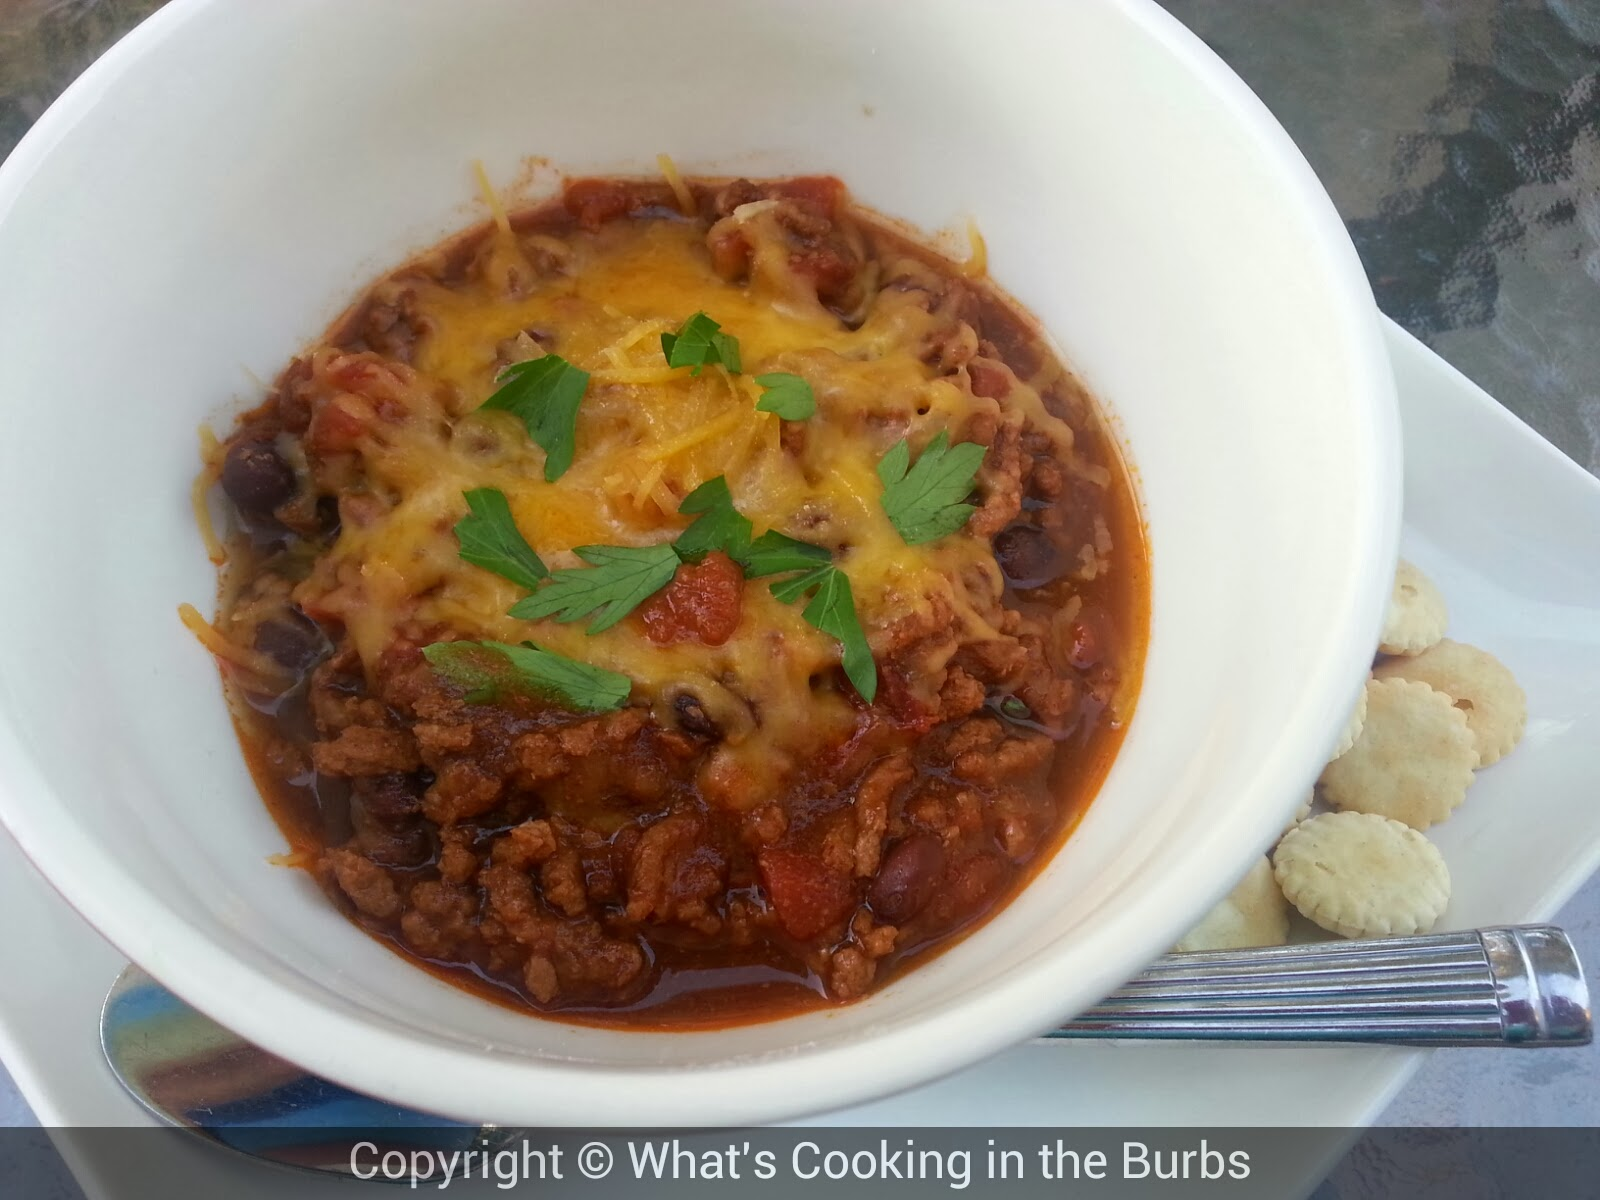 What's Cooking in the Burbs: Crock Pot Root Beer BBQ Chili